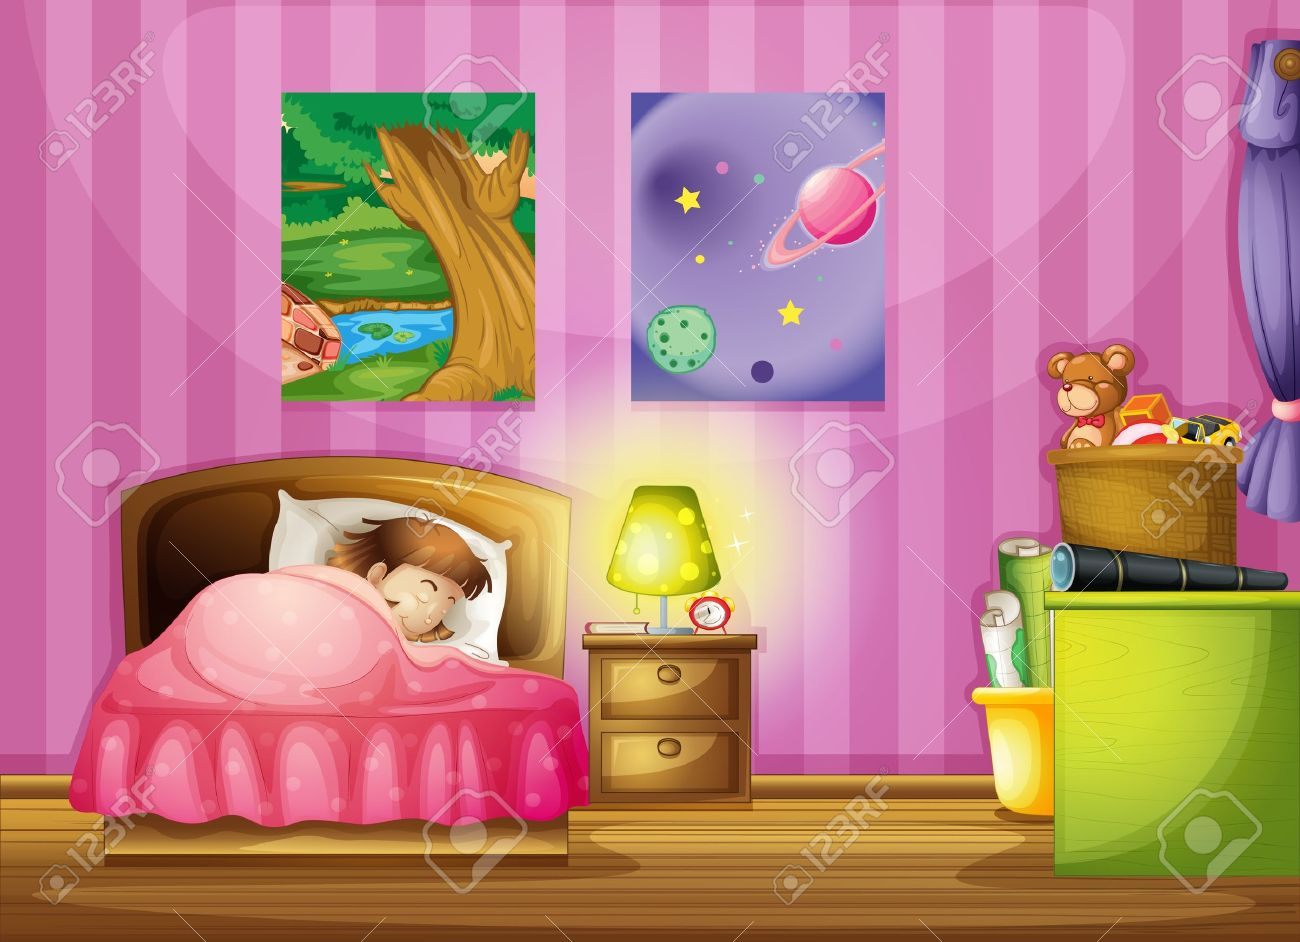 Vector   illustration of a girl and a beautiful bedroom. Illustration Of A Girl And A Beautiful Bedroom Royalty Free